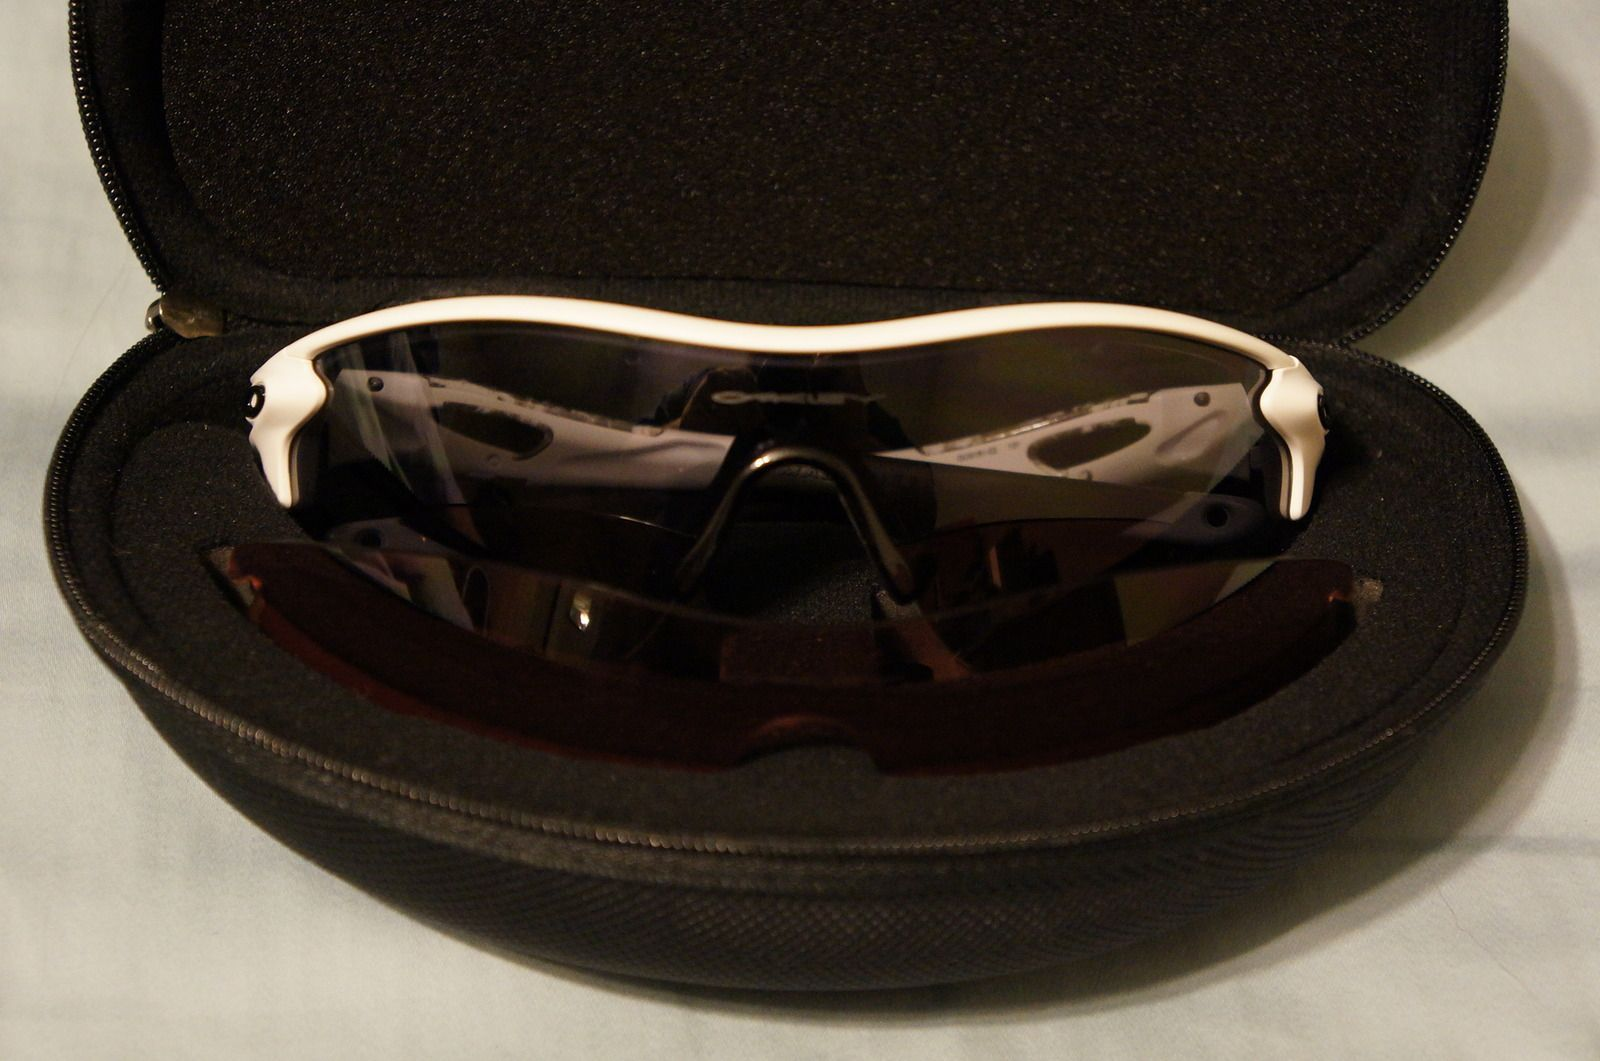 Radarlock - Matte White W/ Grey Polarized & G40 Path BNIB - Price Drop! - dsc07026u.jpg